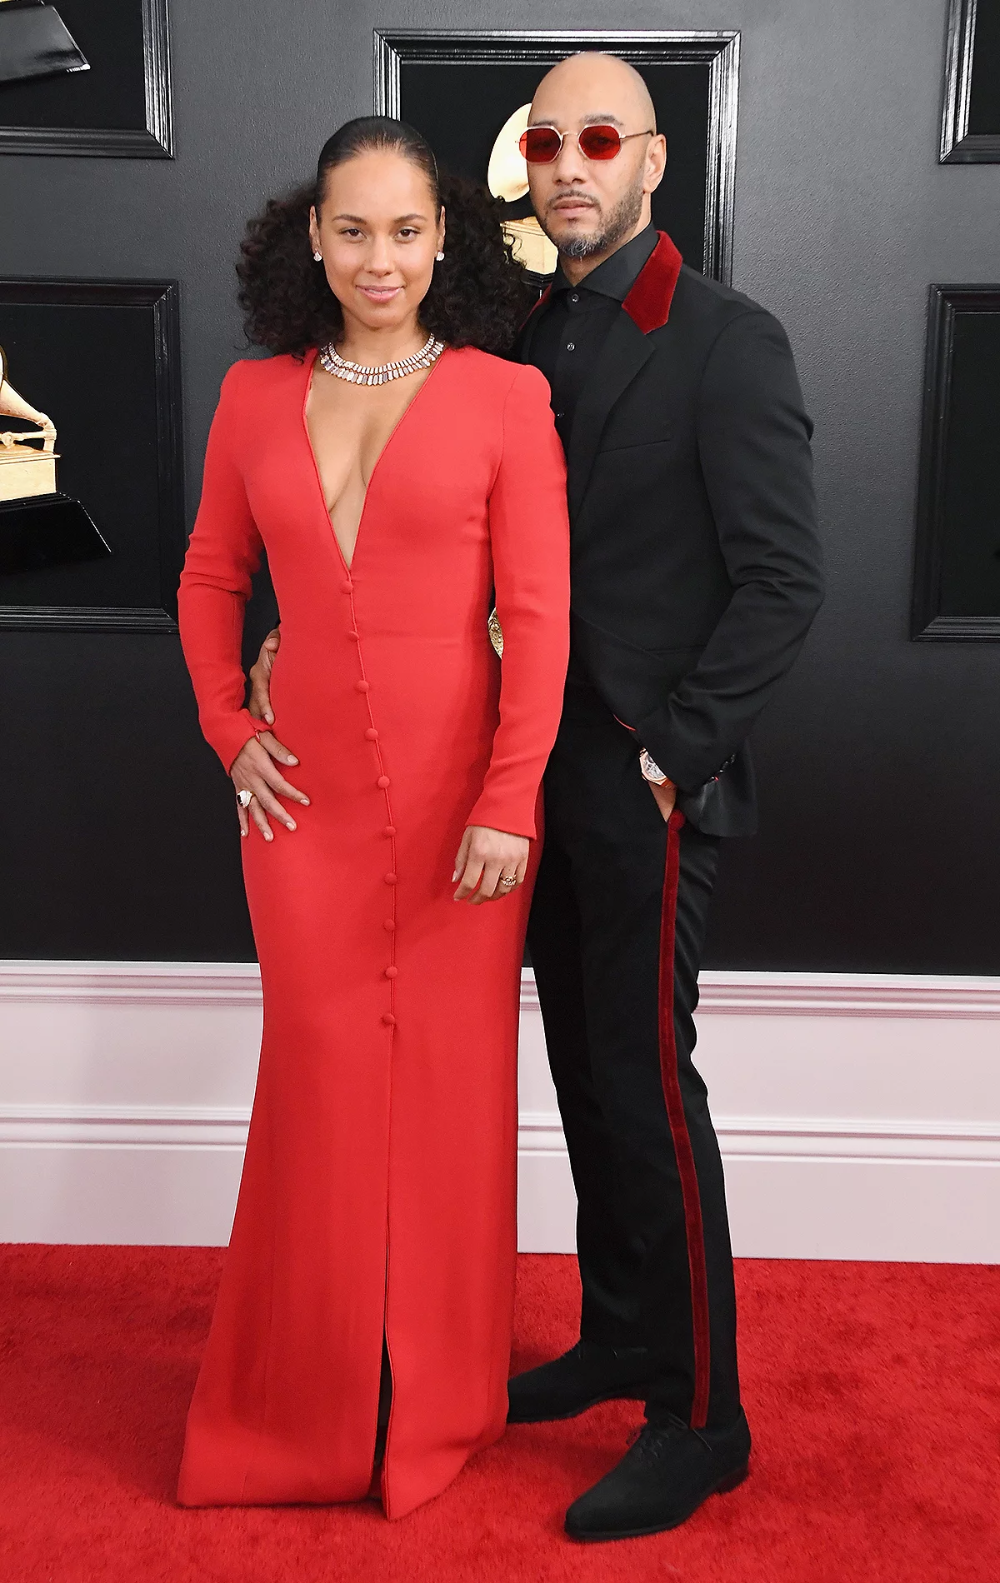 All About The Custom 5 Foot Long Crystal Hair Piece Alicia Keys Wore At The 2020 Grammy Awards In 2020 Grammy Awards Red Carpet Fashion Red Carpet Looks